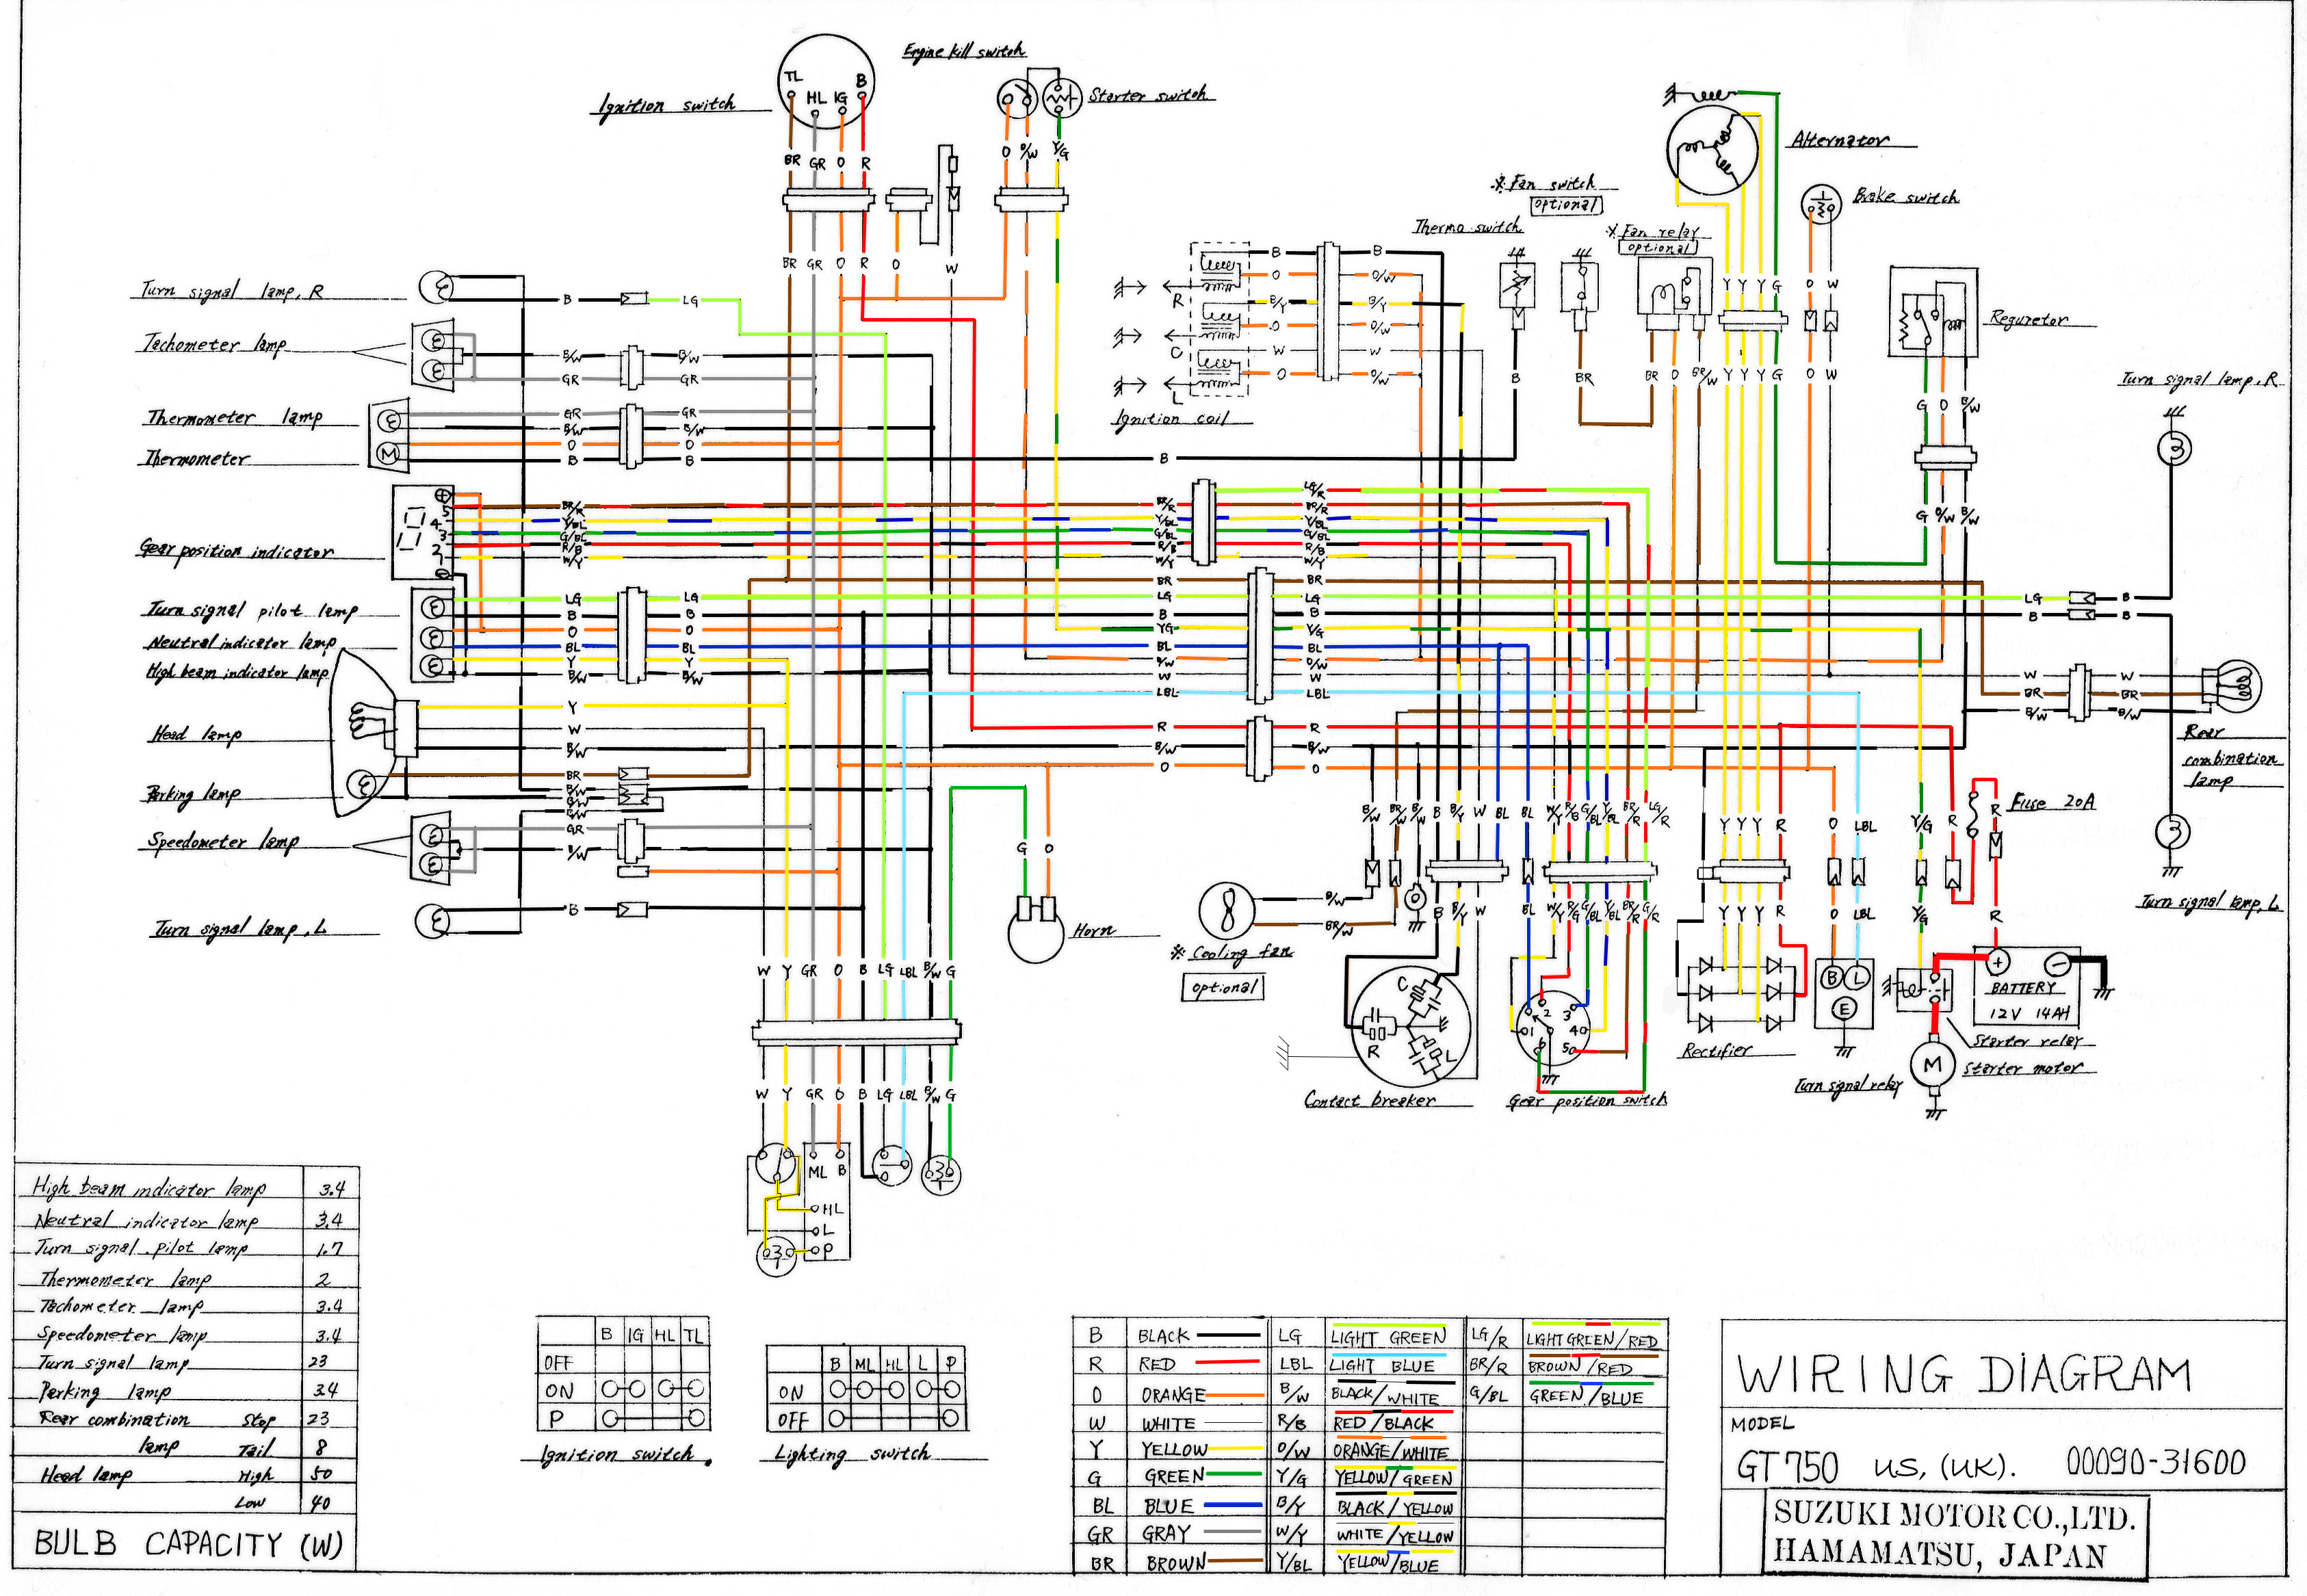 Suzuki Gt750 Wiring Diagram Library Lt80 Parts On 2003 Hayabusa In Colour